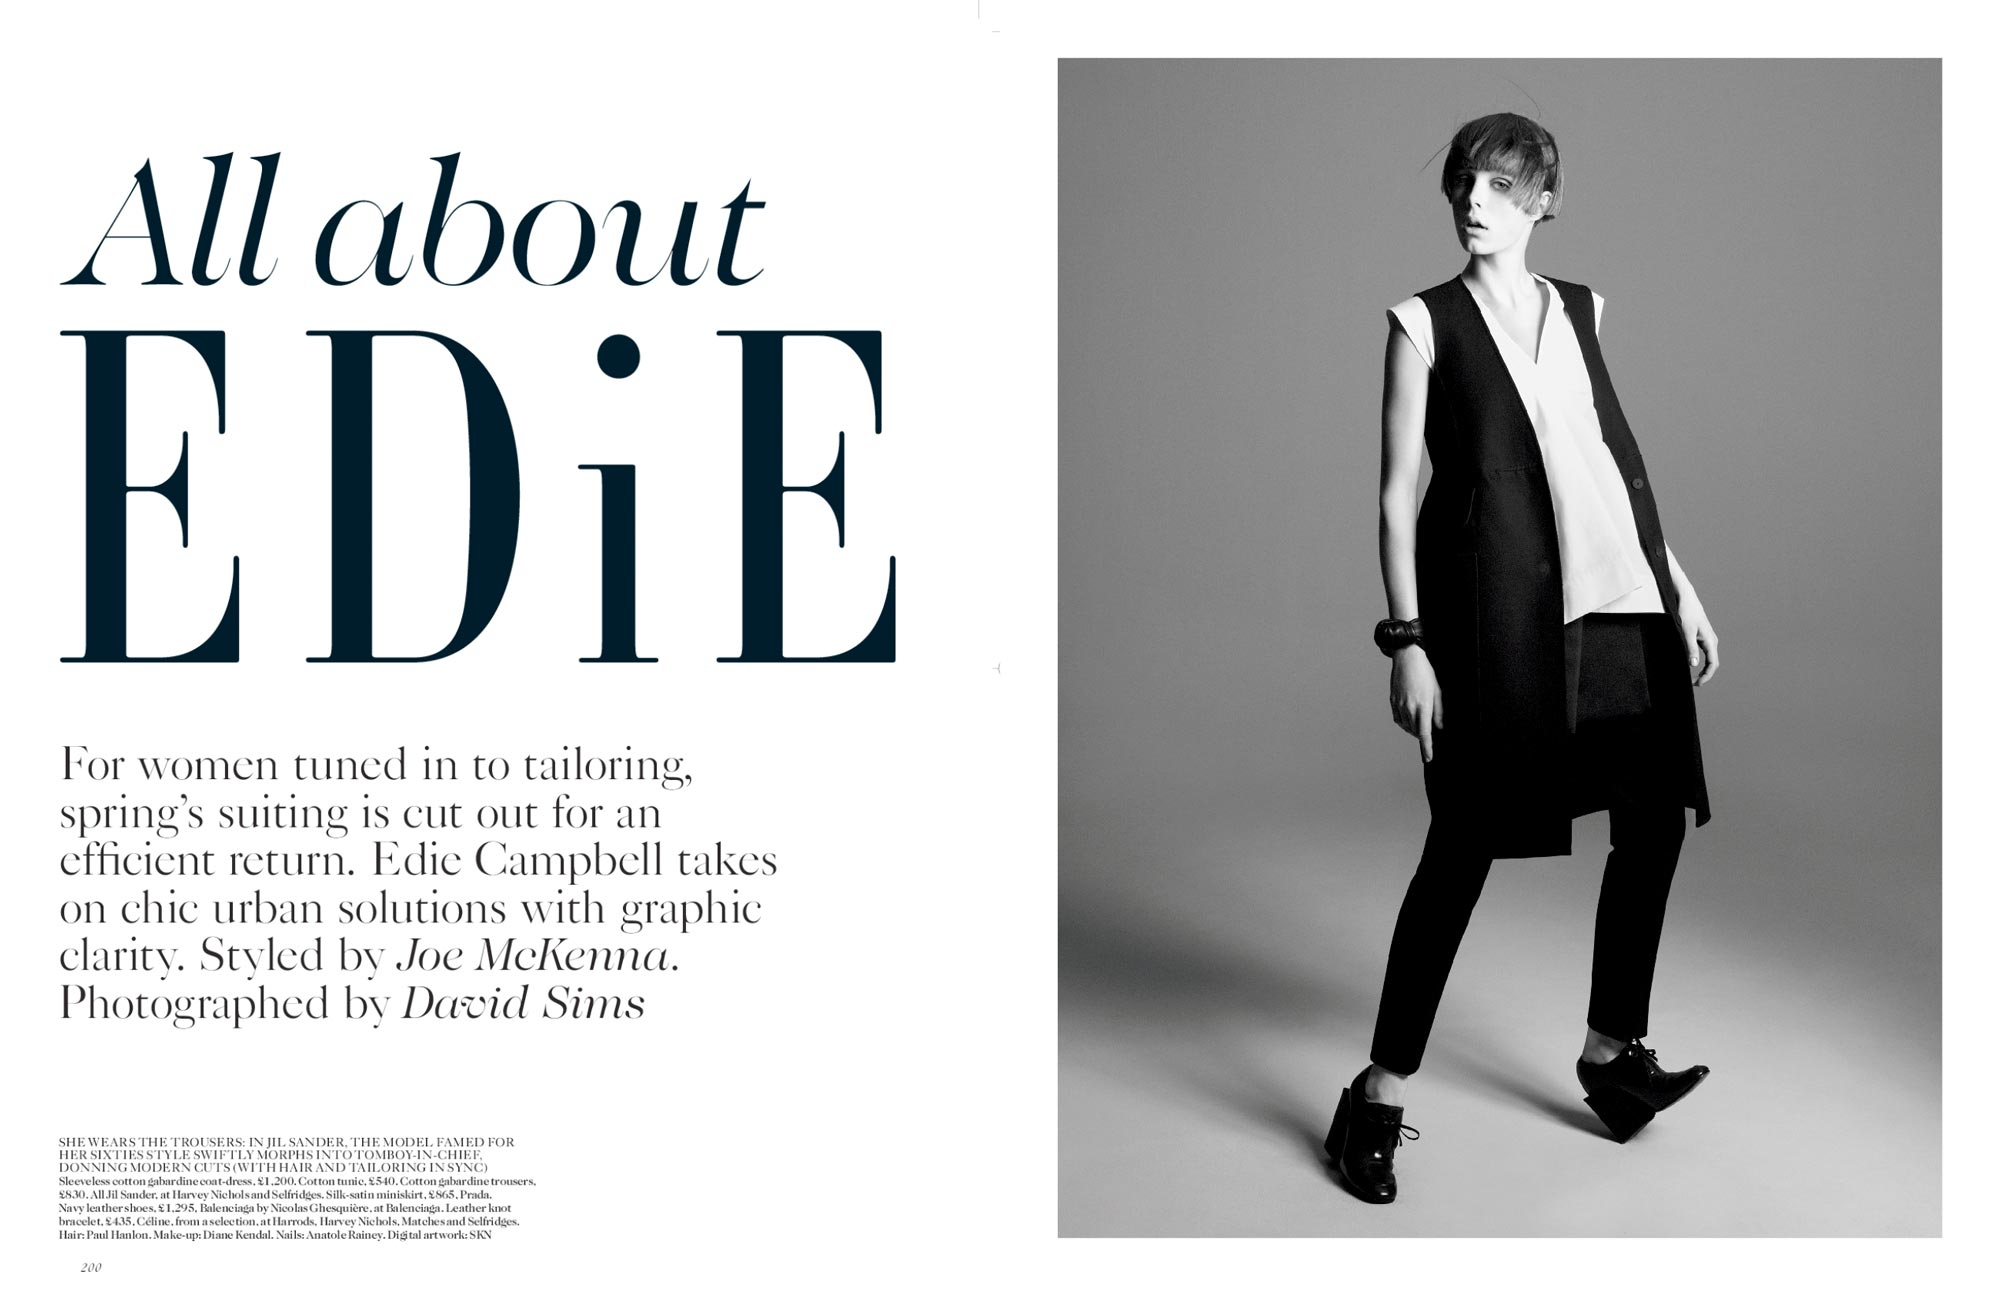 All about Edie - David Sims